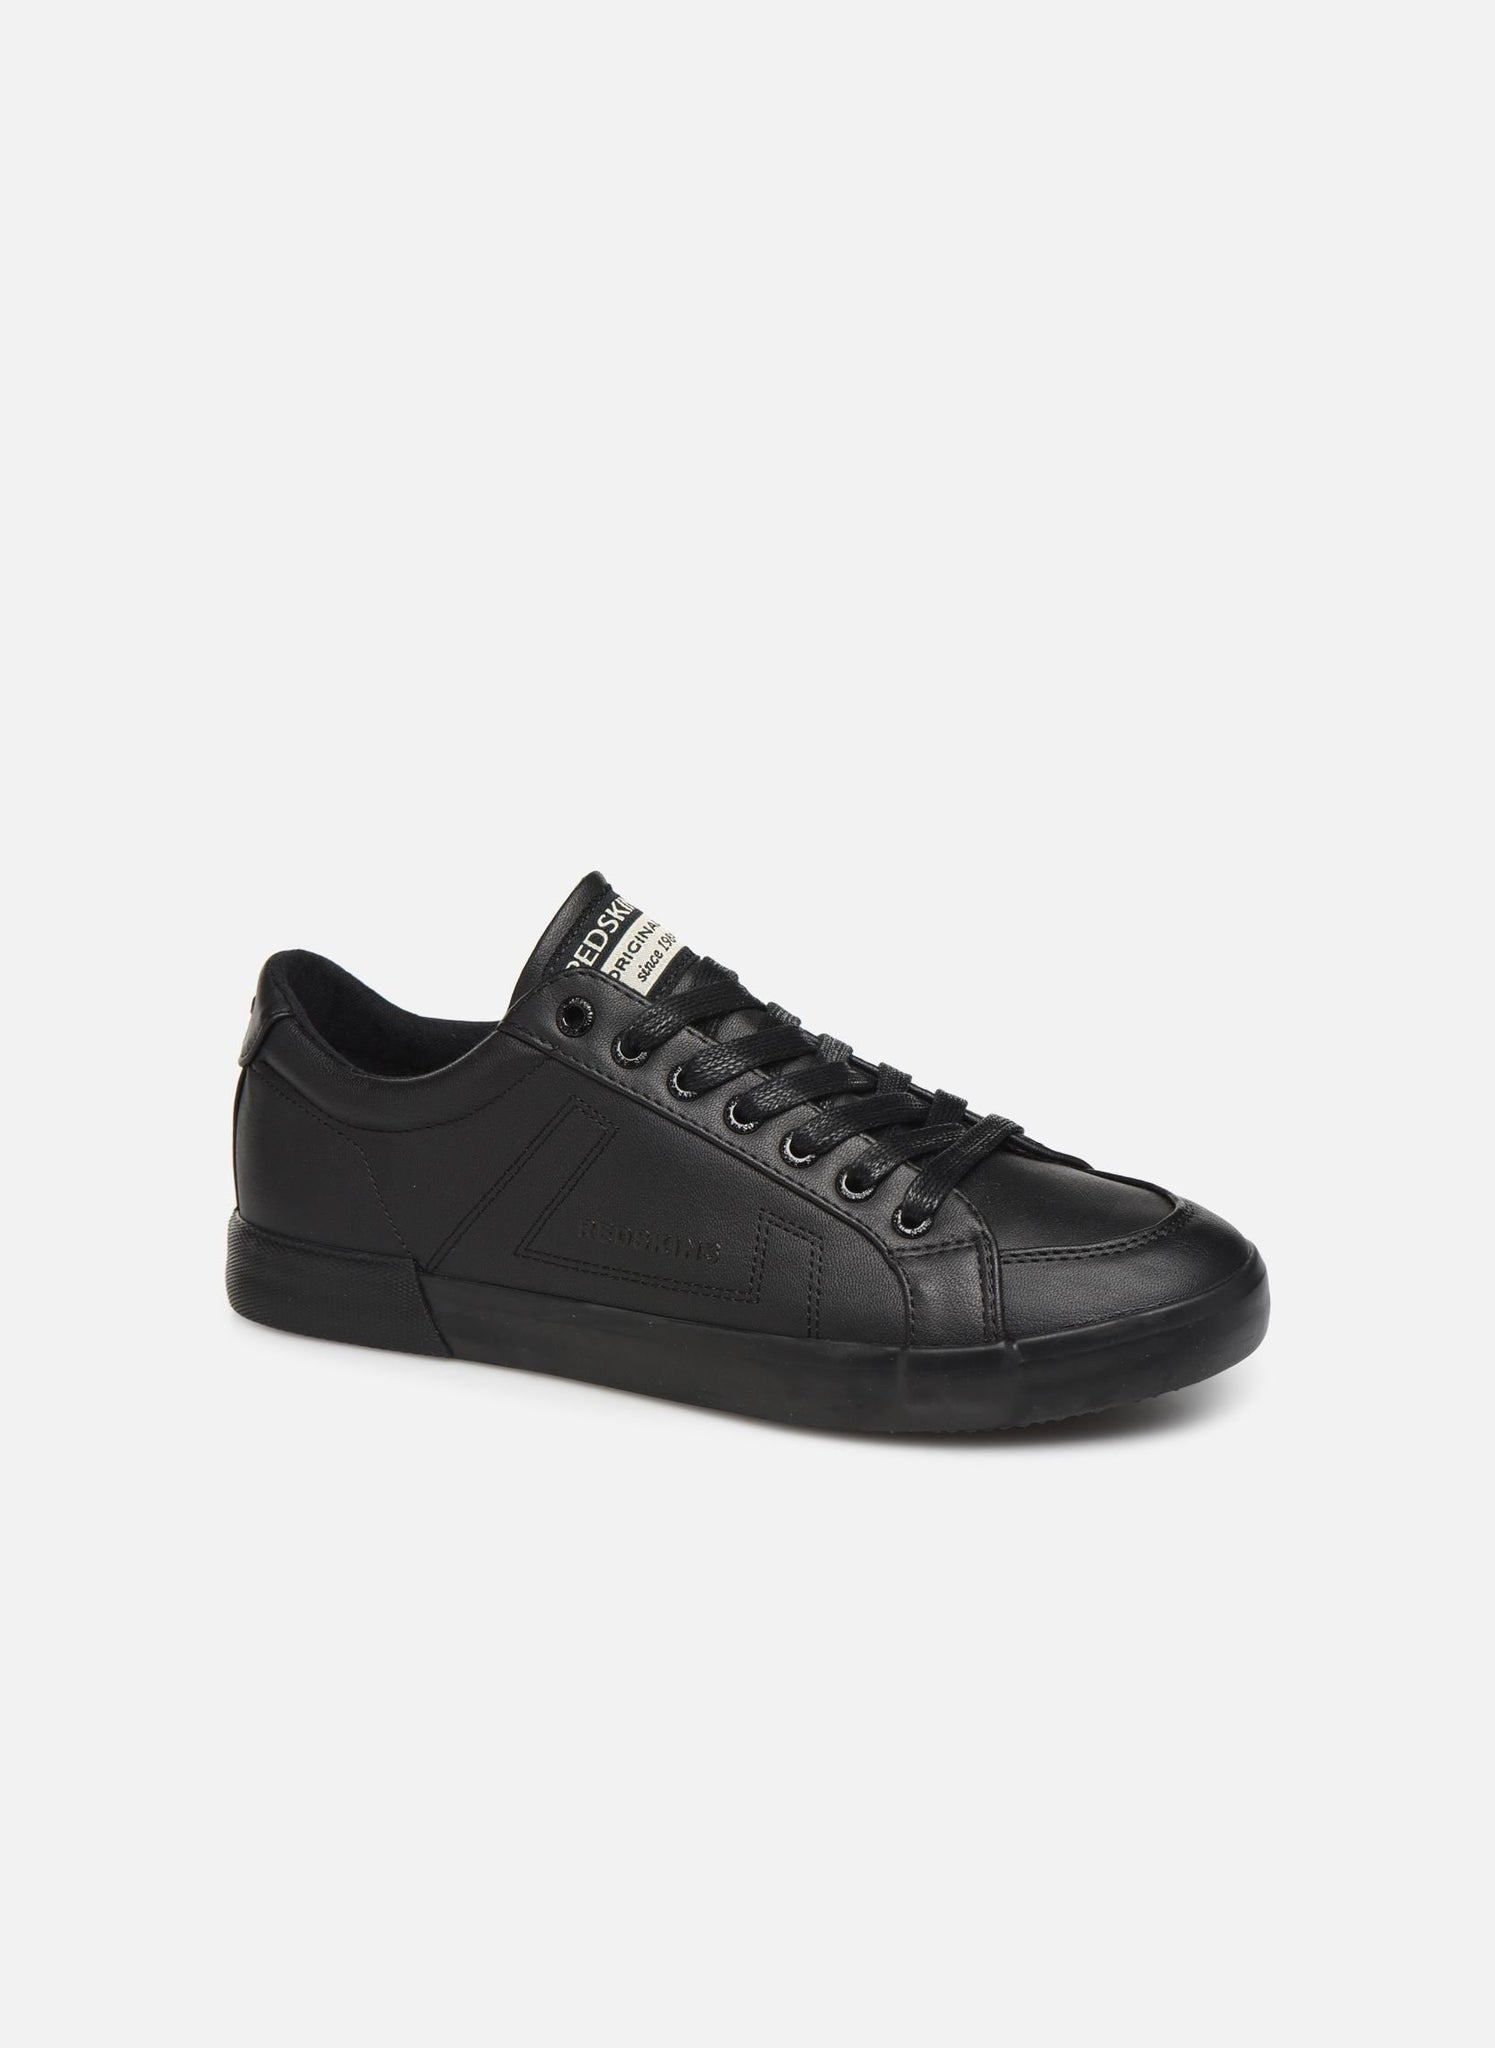 Men's Casual Sneakers | Black